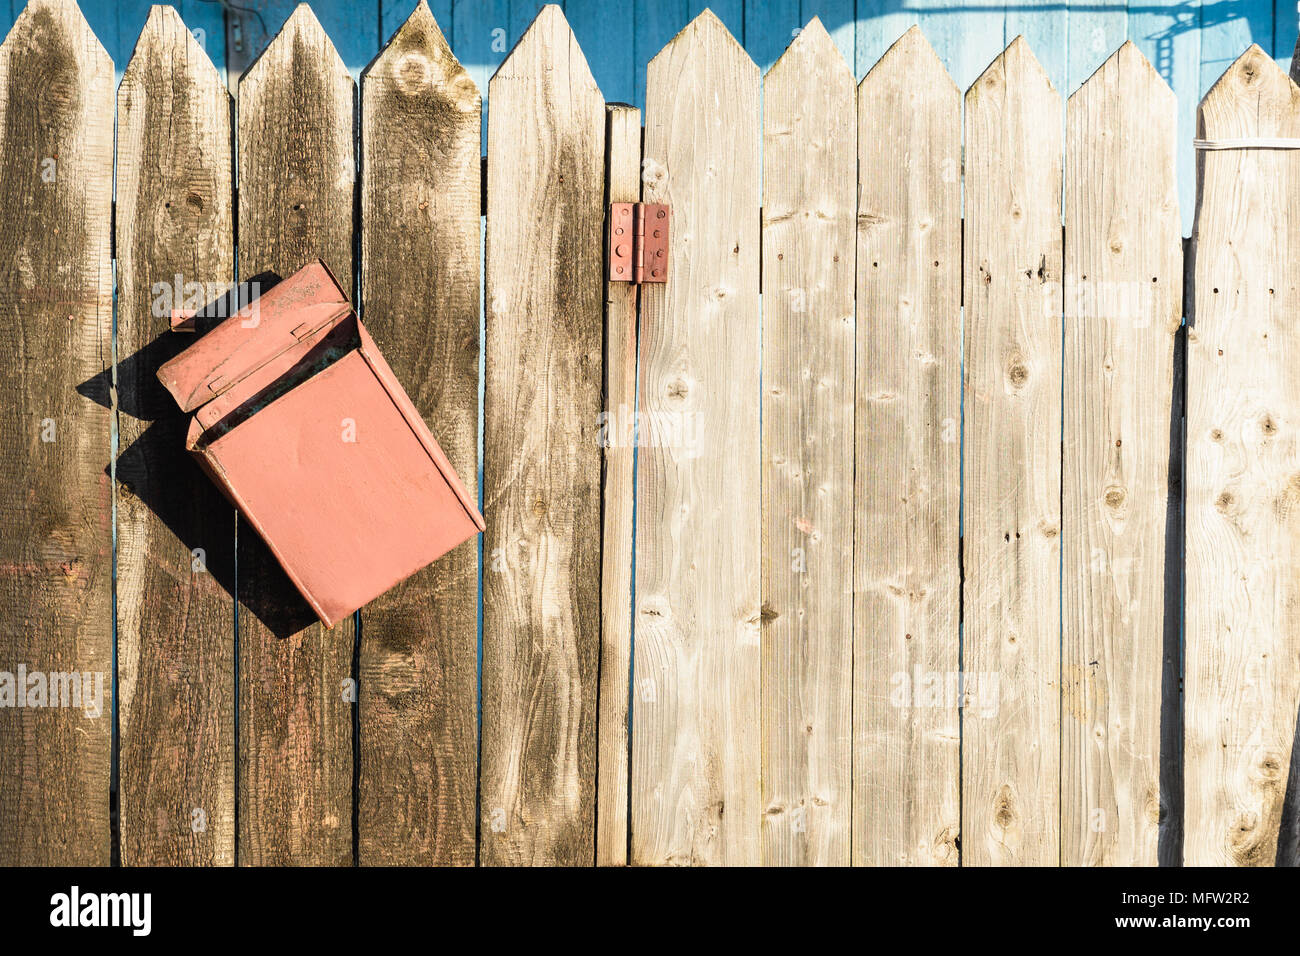 old wooden fence and a crooked rusty letter box - Stock Image